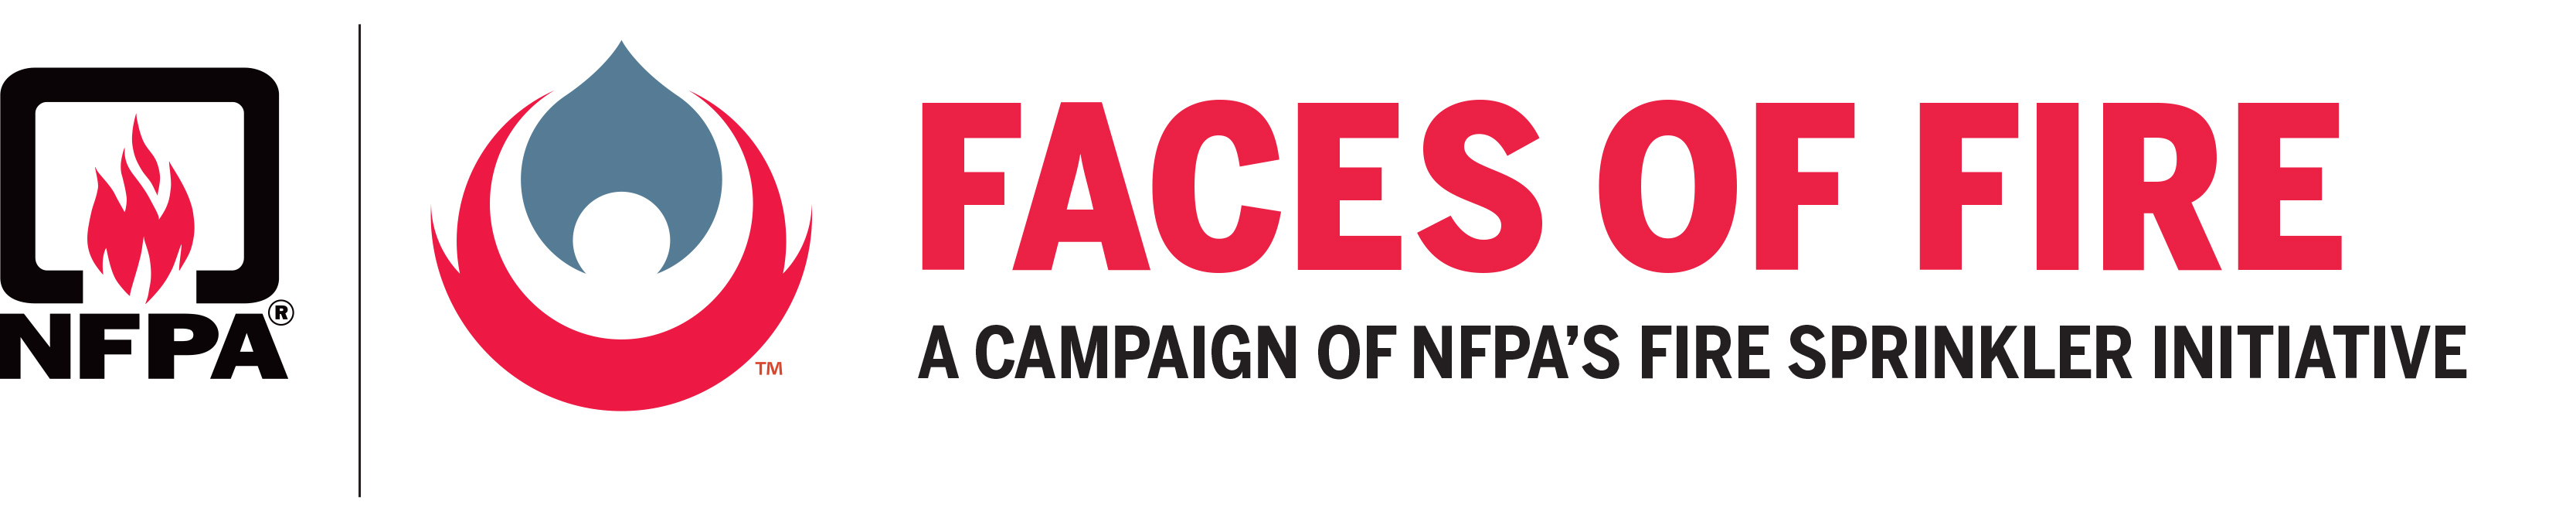 Faces of Fire is a campaign by the Fire Sprinkler Initiative to underscore the human impact of home fires